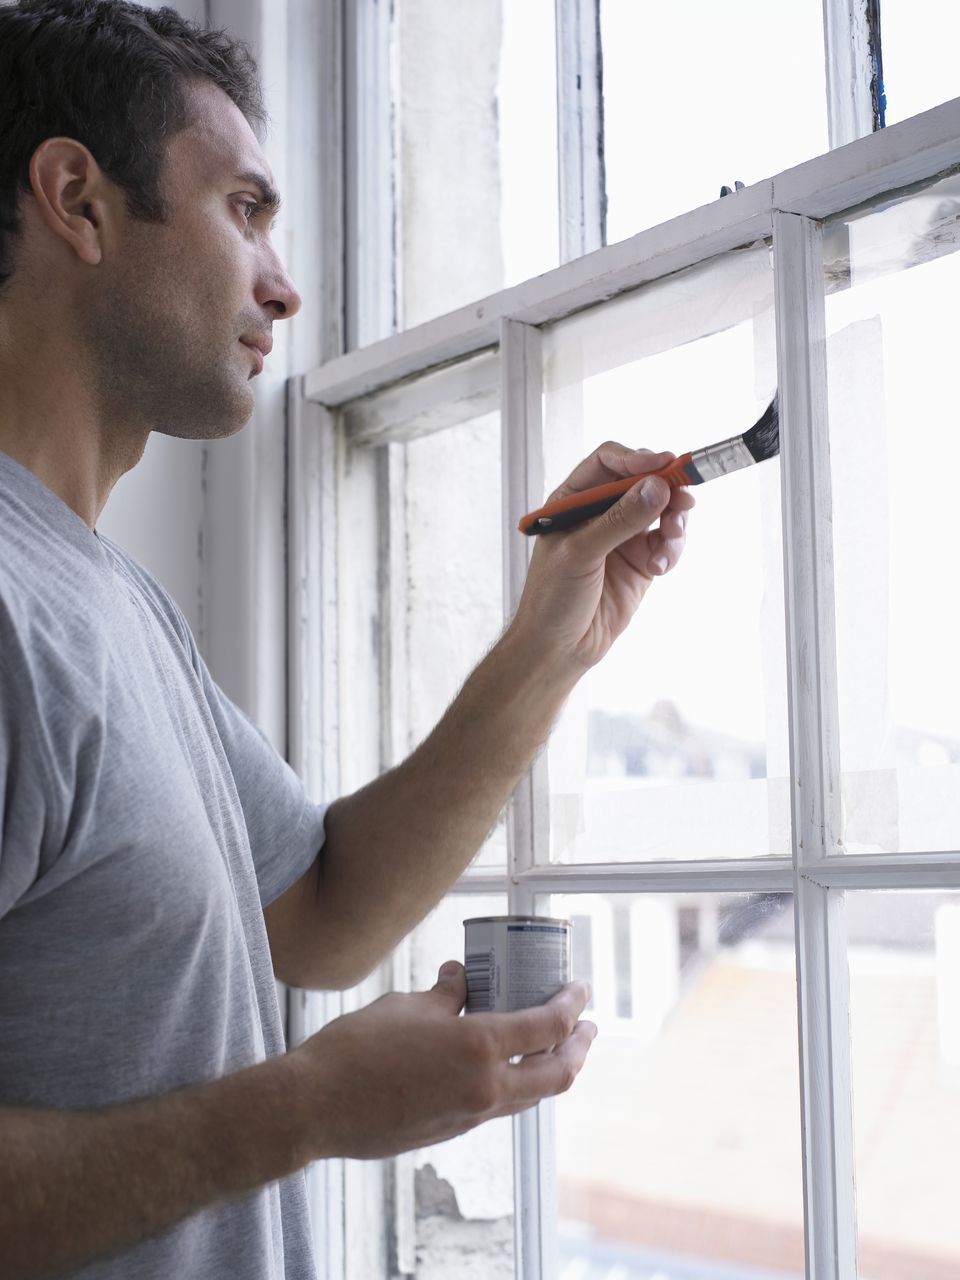 Man Holding a Paint Tin and a Paintbrush, Painting a Window Frame